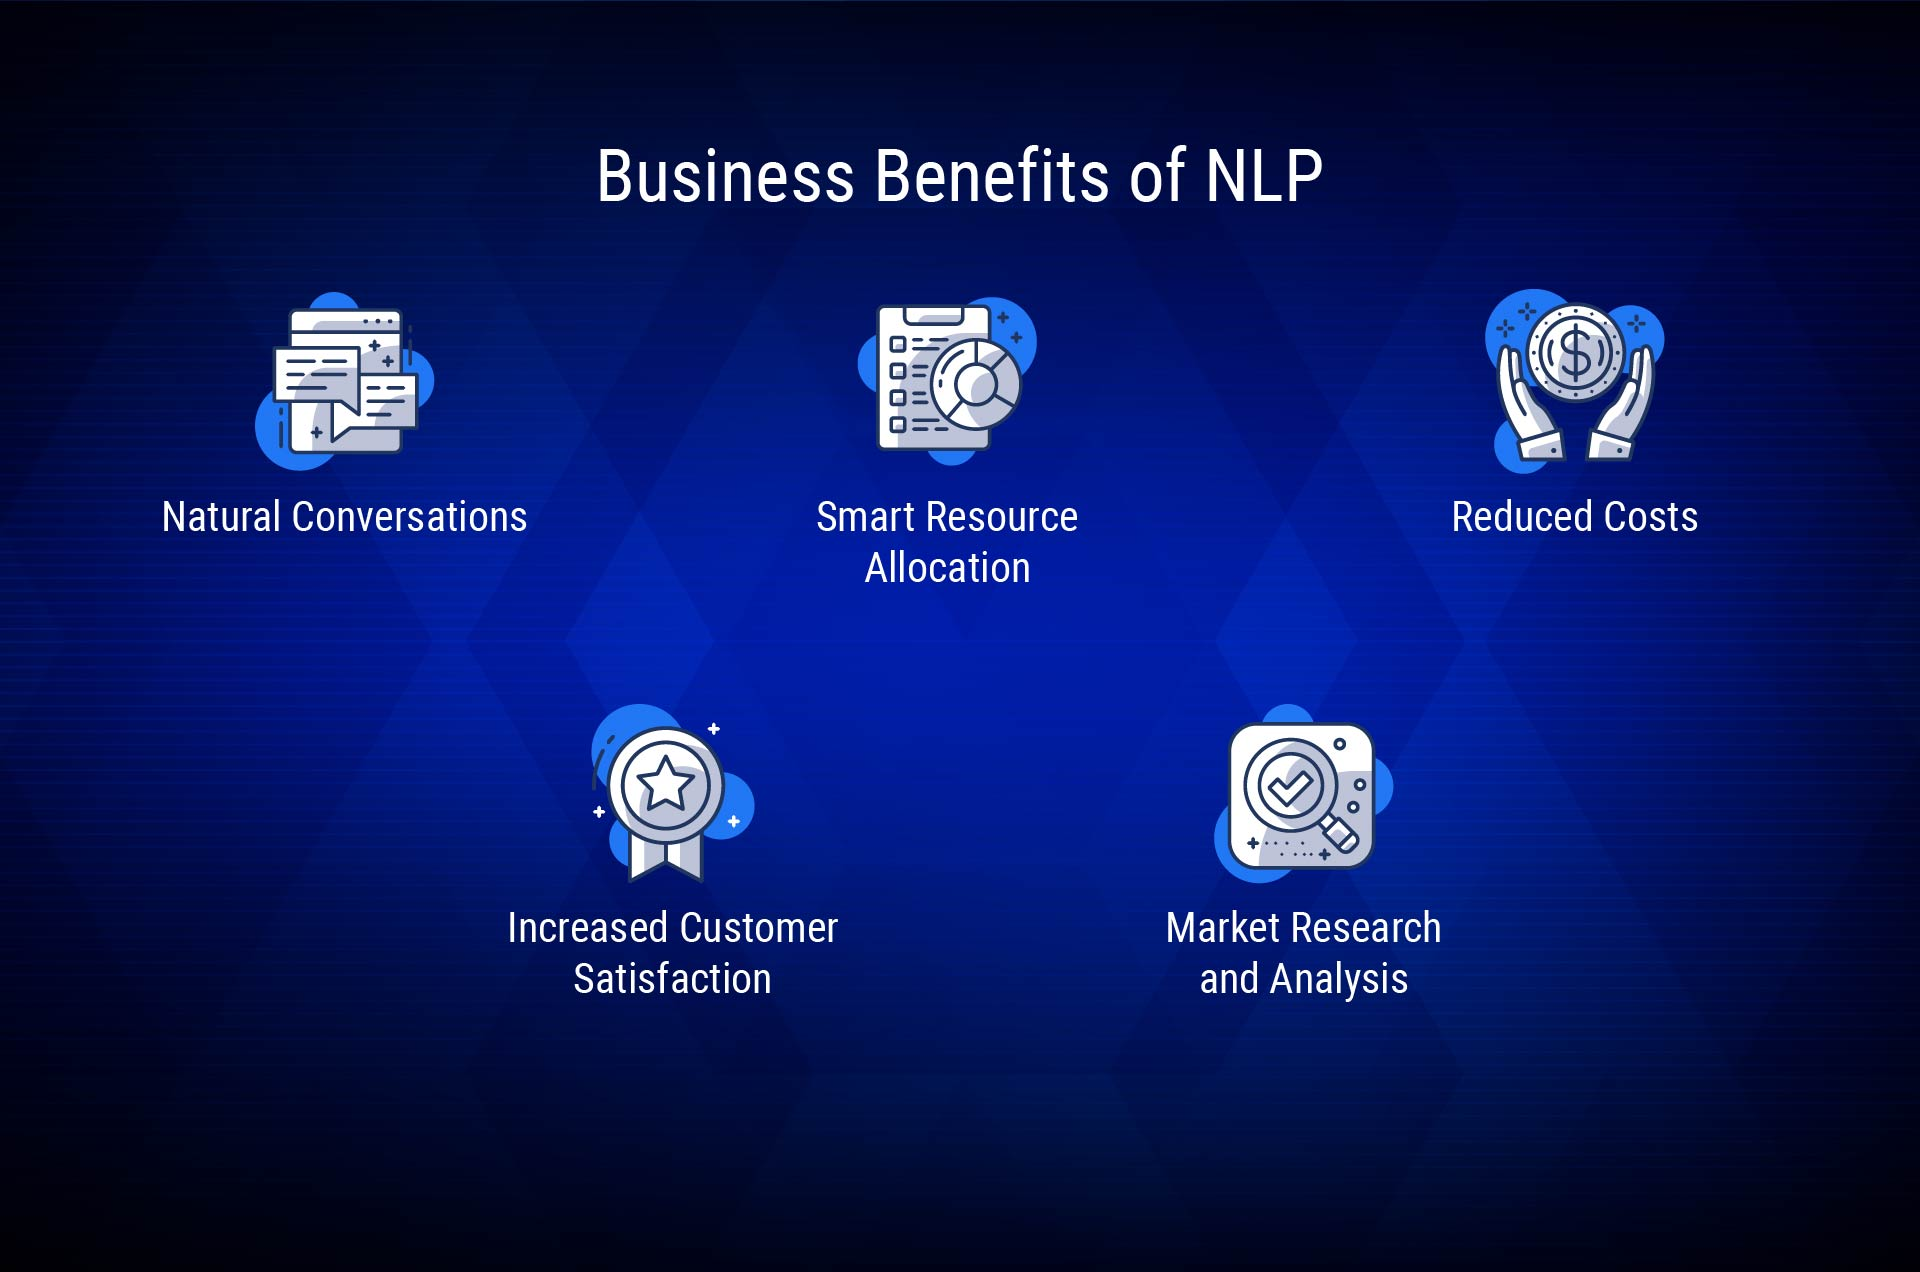 Benefits of NLP